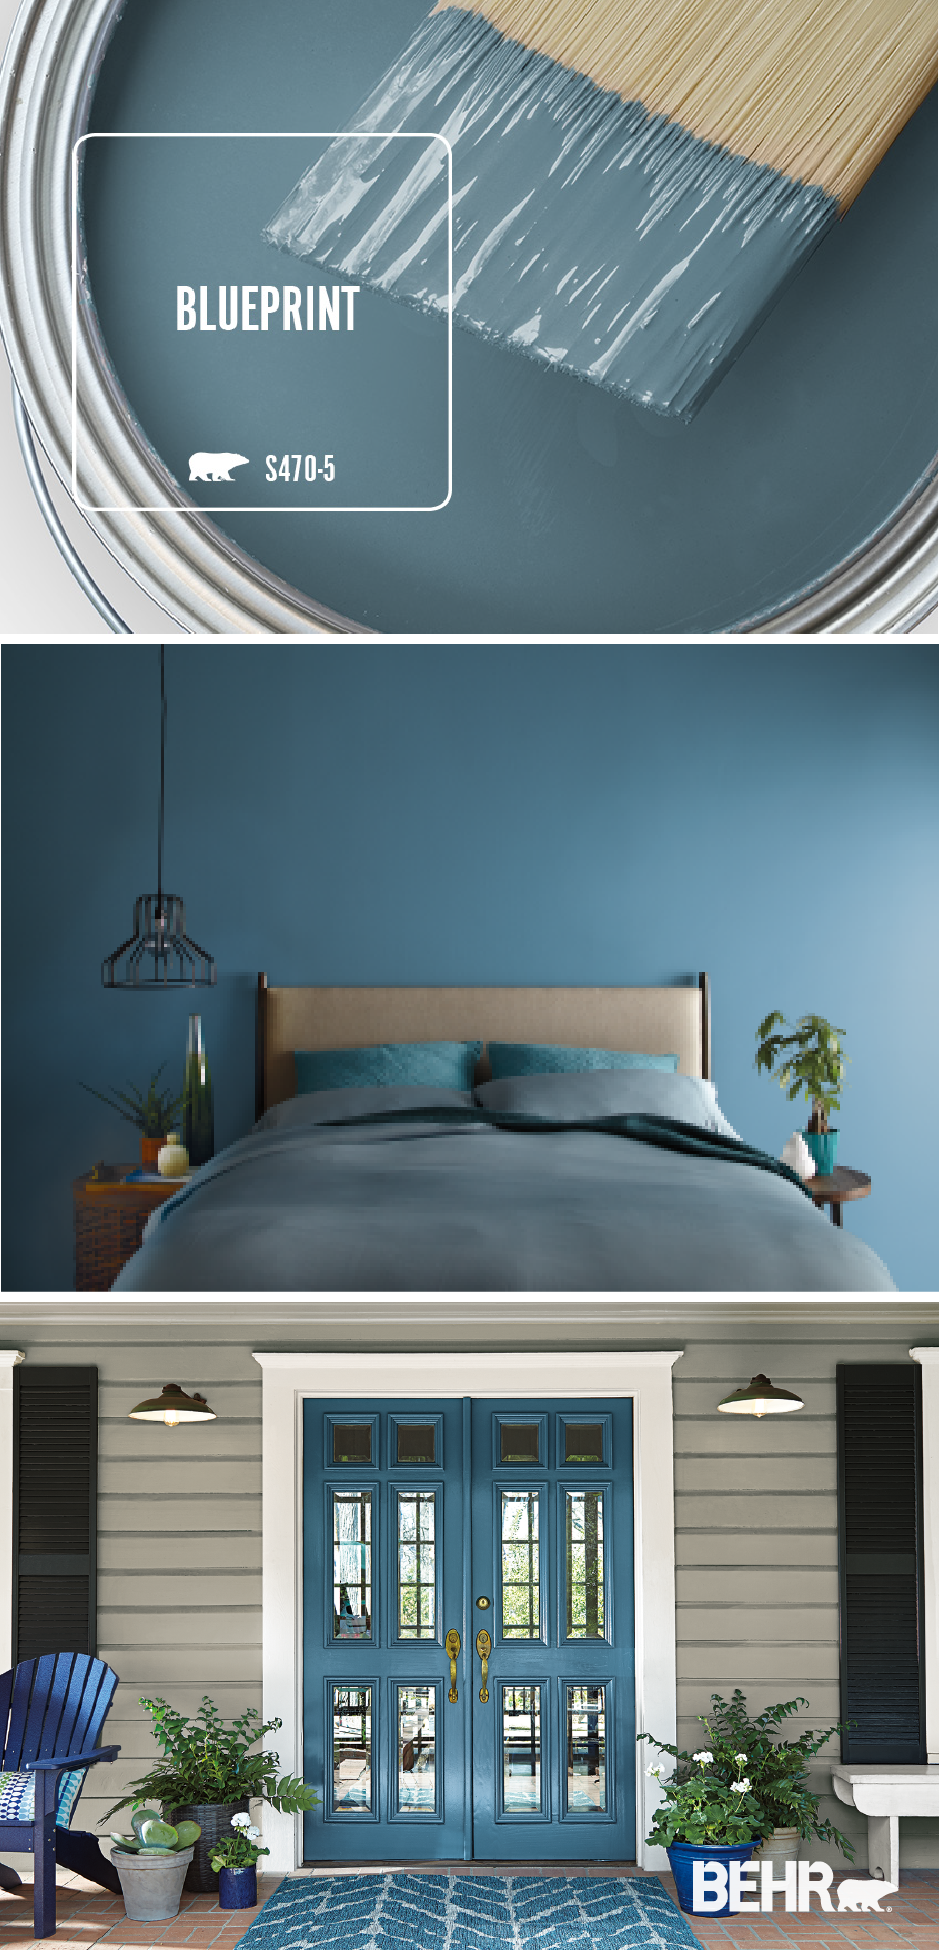 See What The Behr 2019 Color Of The Year Blueprint Can Do For Your Home These Creative Interior Desig Paint Colors For Home Blue Master Bedroom House Colors